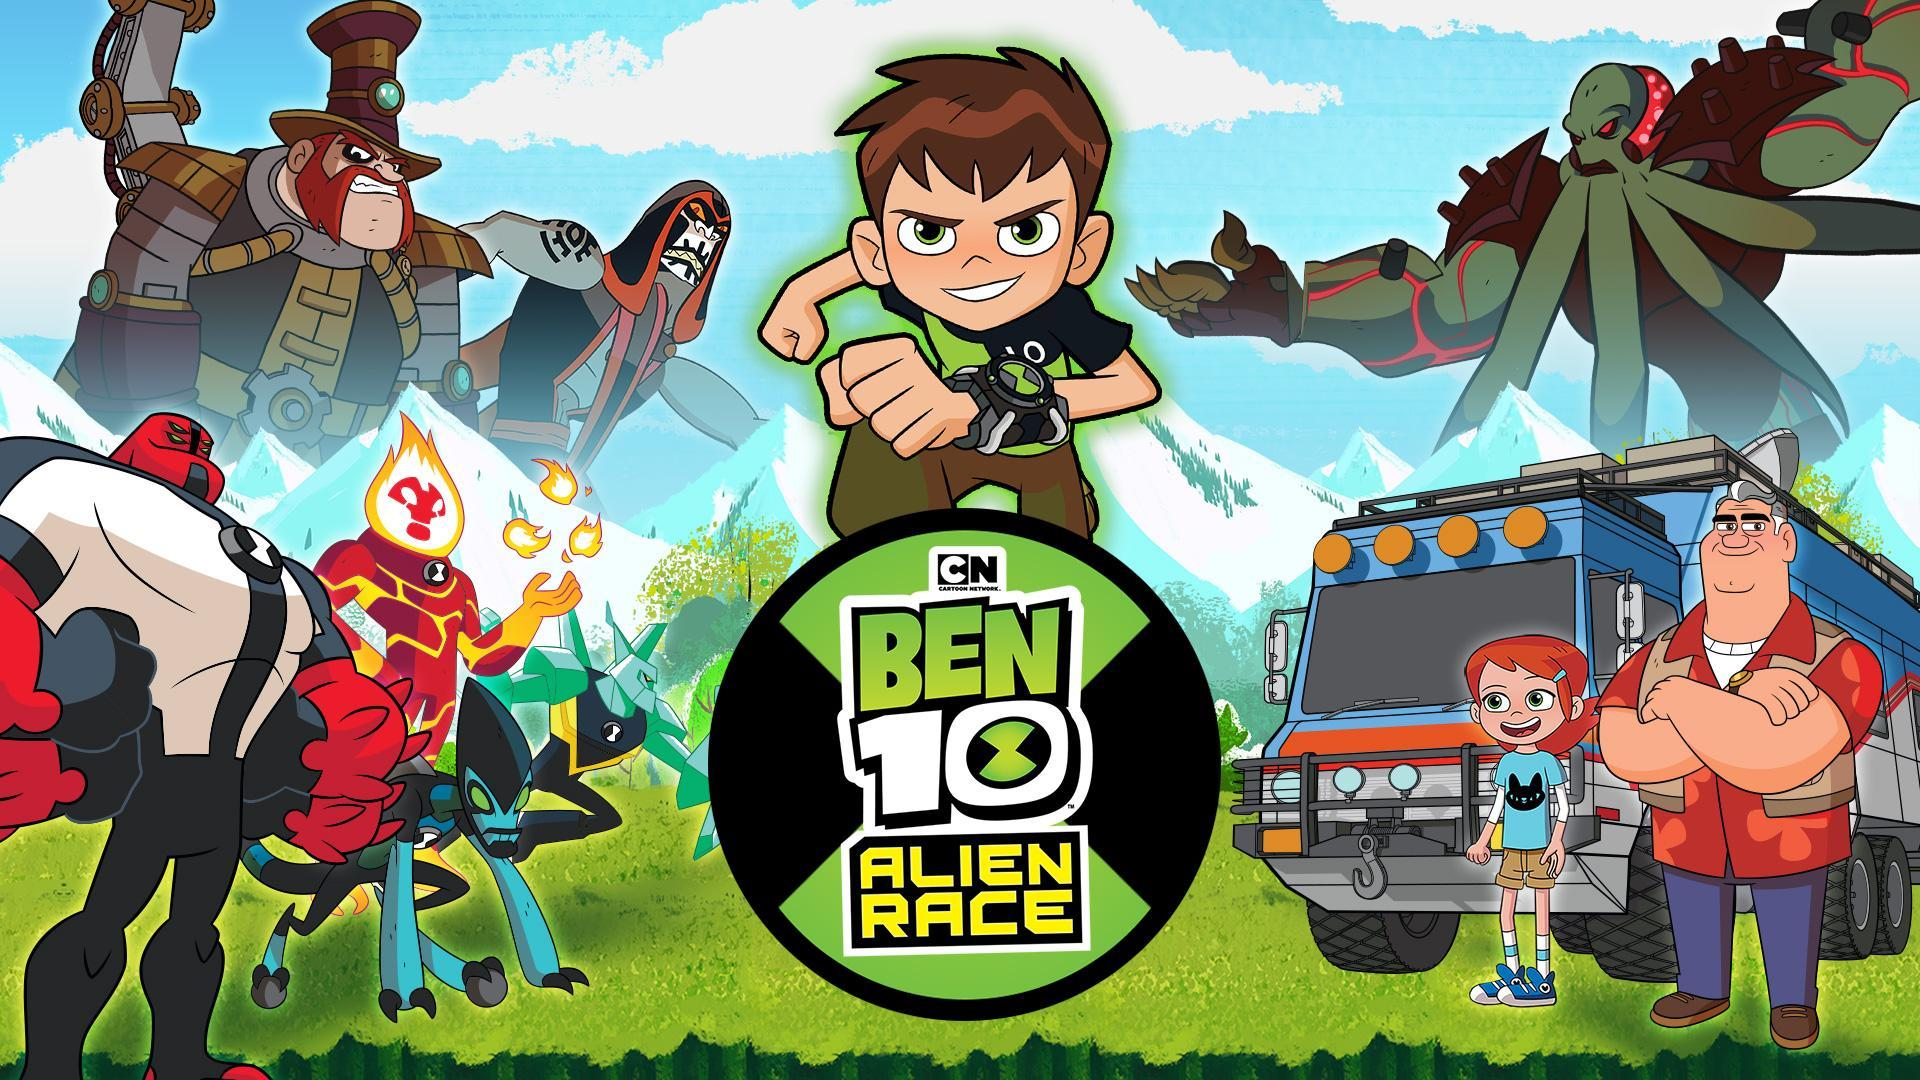 Ben 10 Alien Race For Android Apk Download